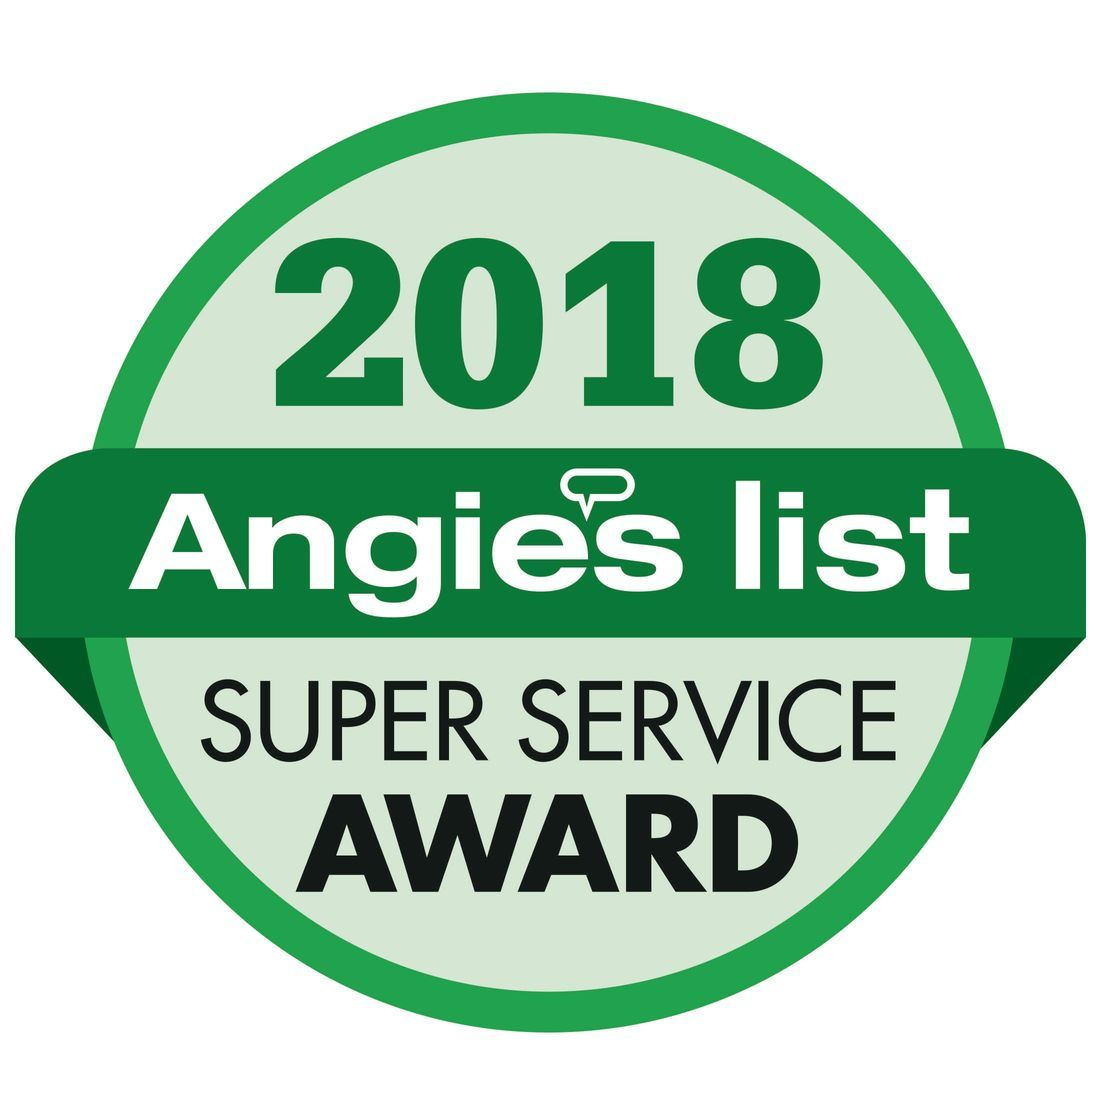 Angies List Super Service Award Normal Illinois Small Engine Tool Repair pick up deliver